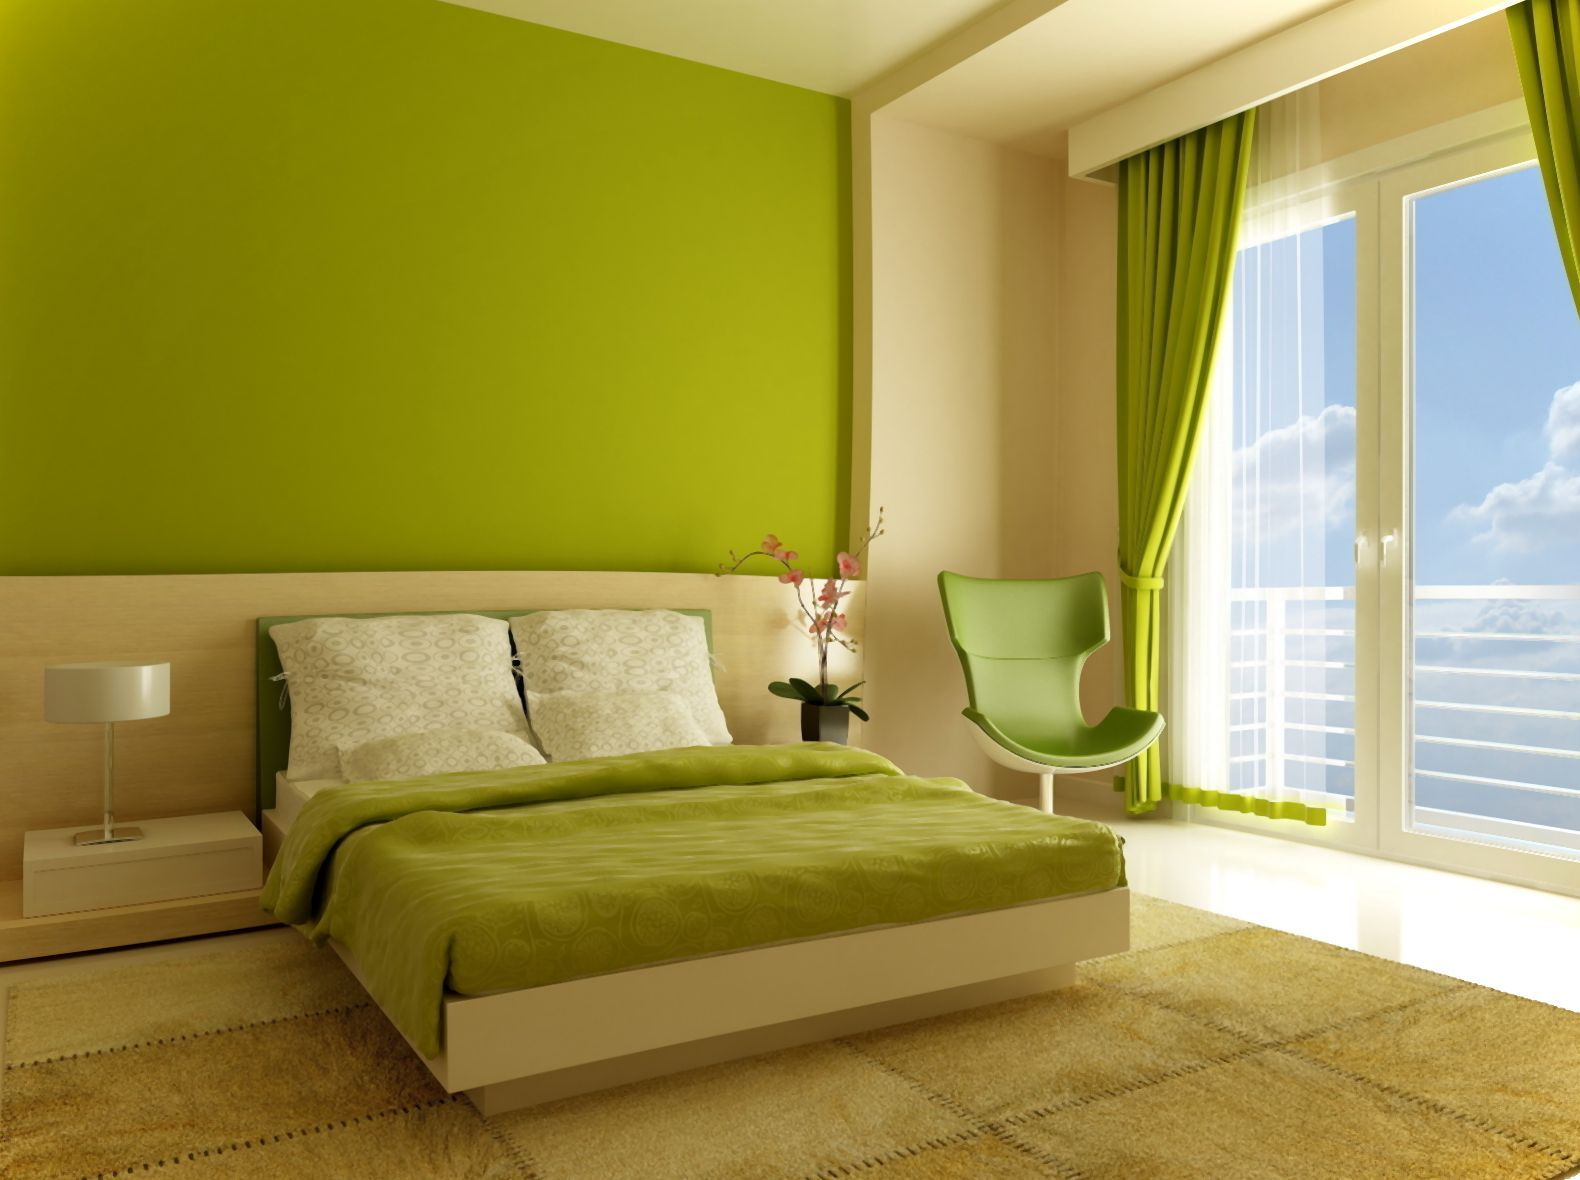 Paint Colour For Bedrooms Representation Of 3 Essential Considerations In Choosing Paint